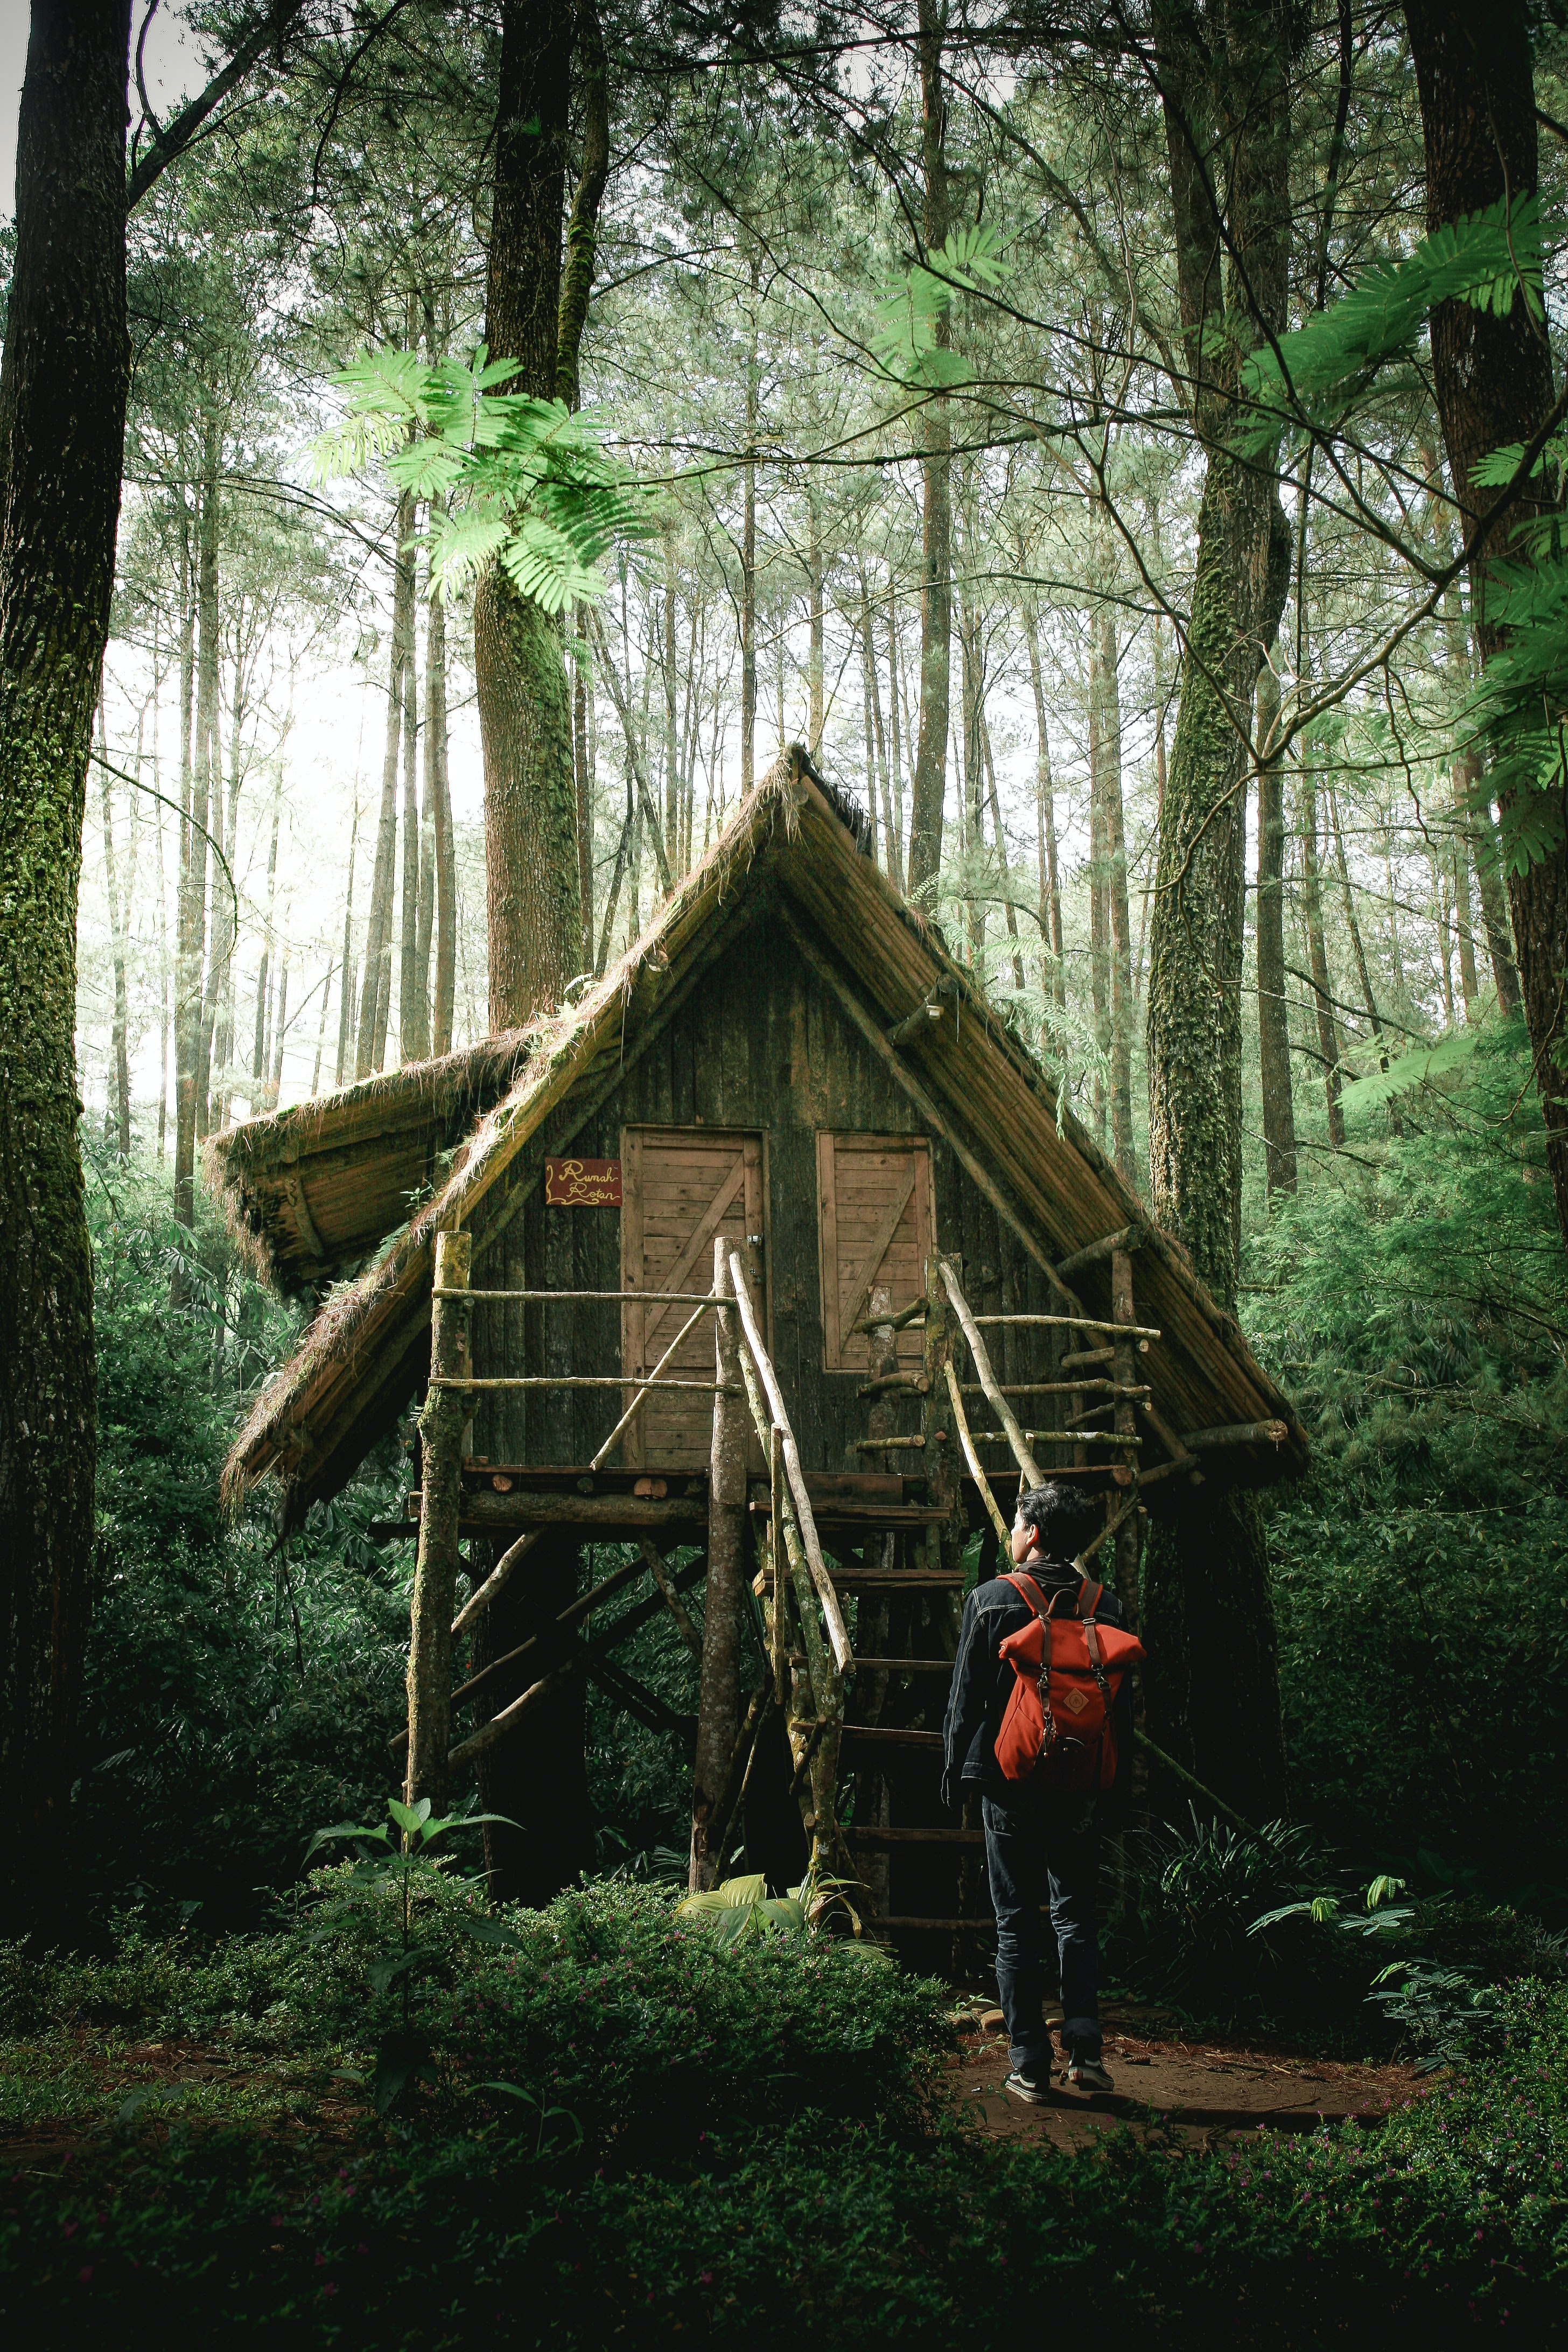 man infront of wooden house in the middle of dense forest